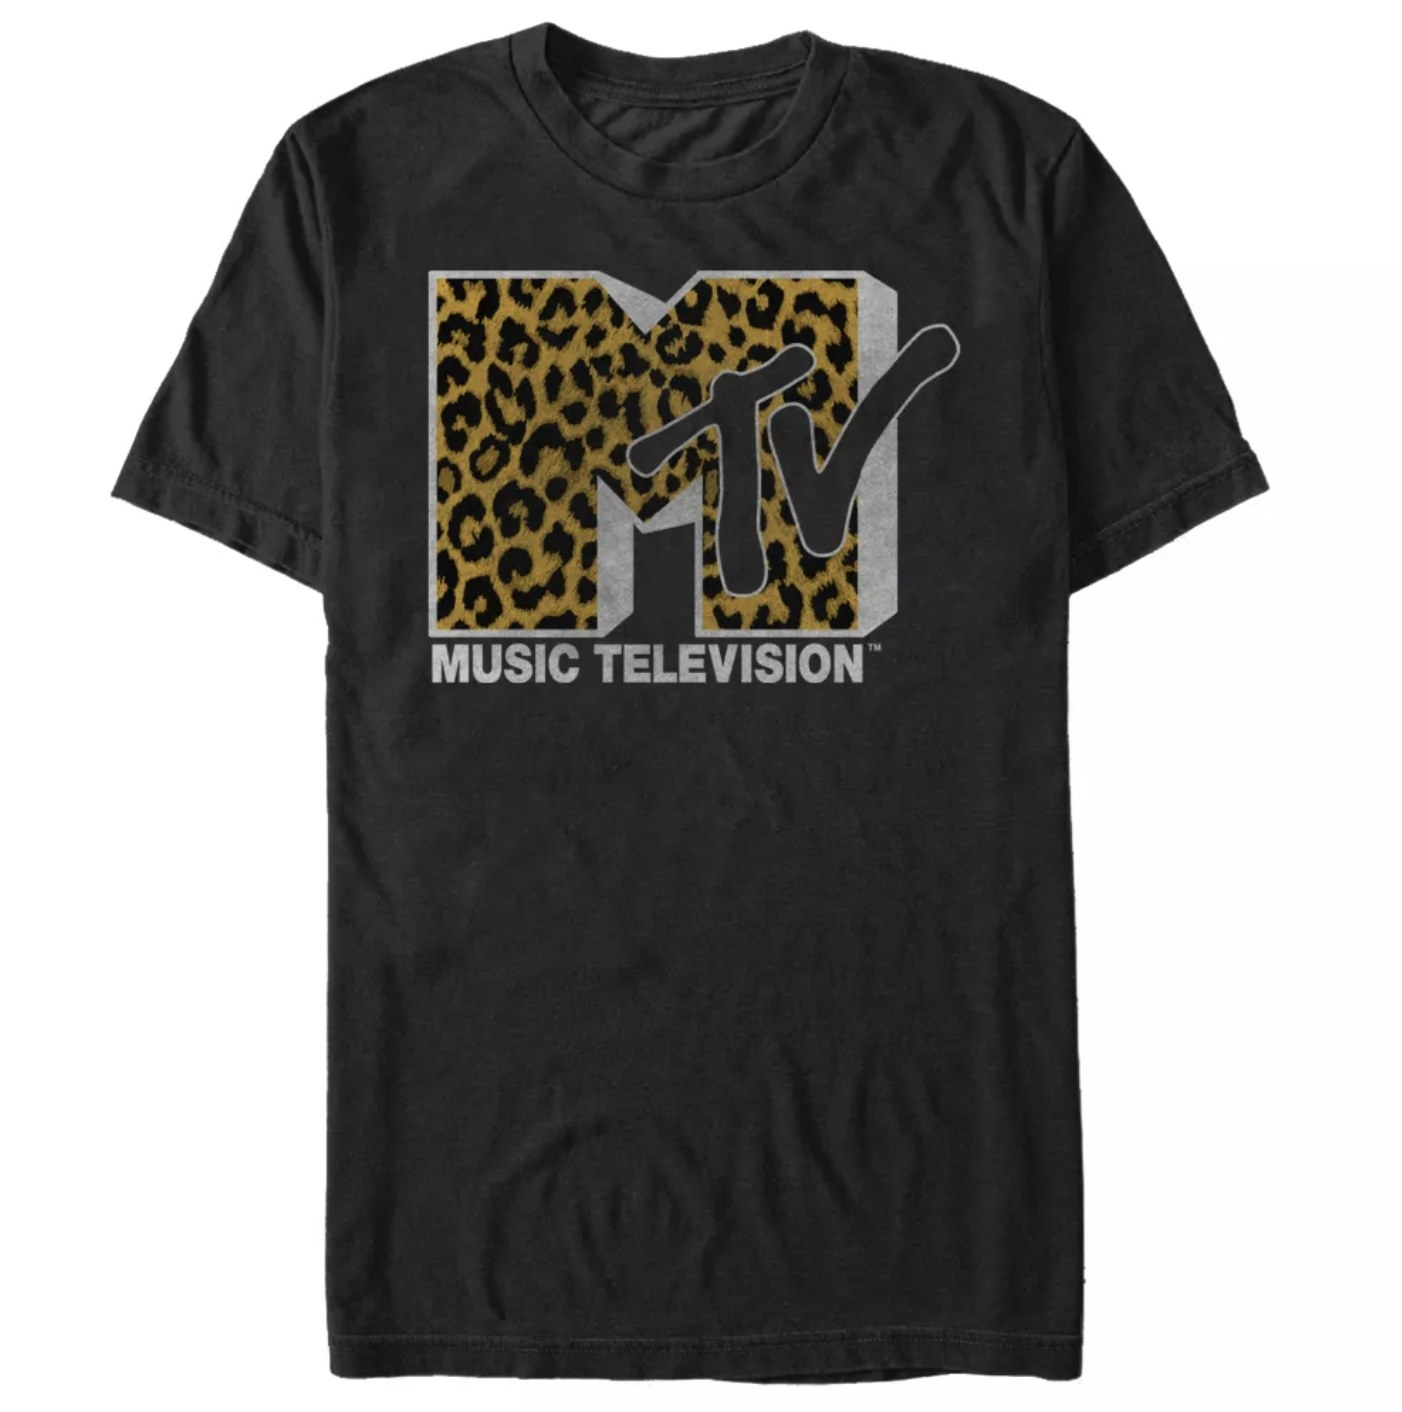 The black MTV shirt